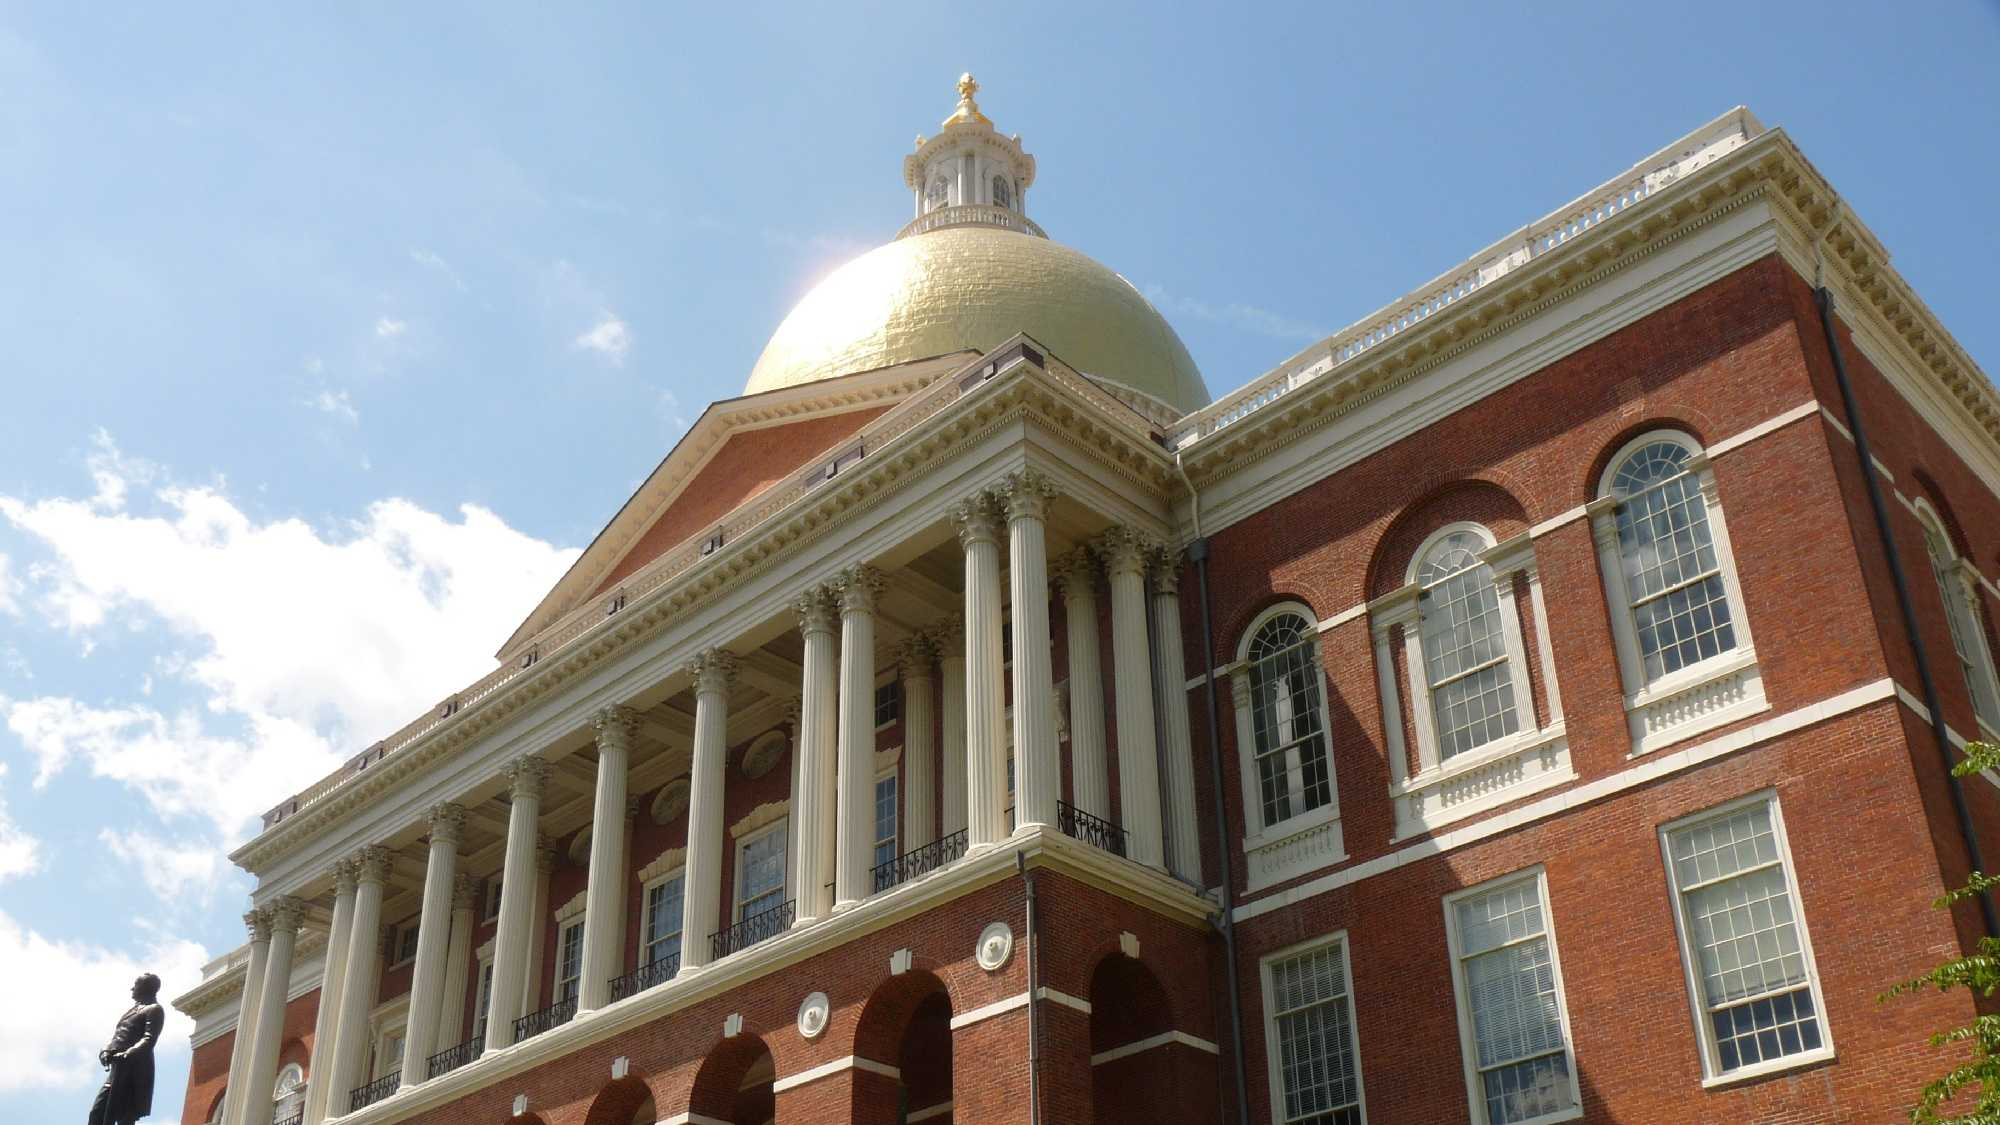 The dome is topped with a pine cone, symbolizing both the importance of Boston's lumber industry during early colonial times and of the state of Maine, which was a district of the Commonwealth of Massachusetts when the Bulfinch section of the building was completed.